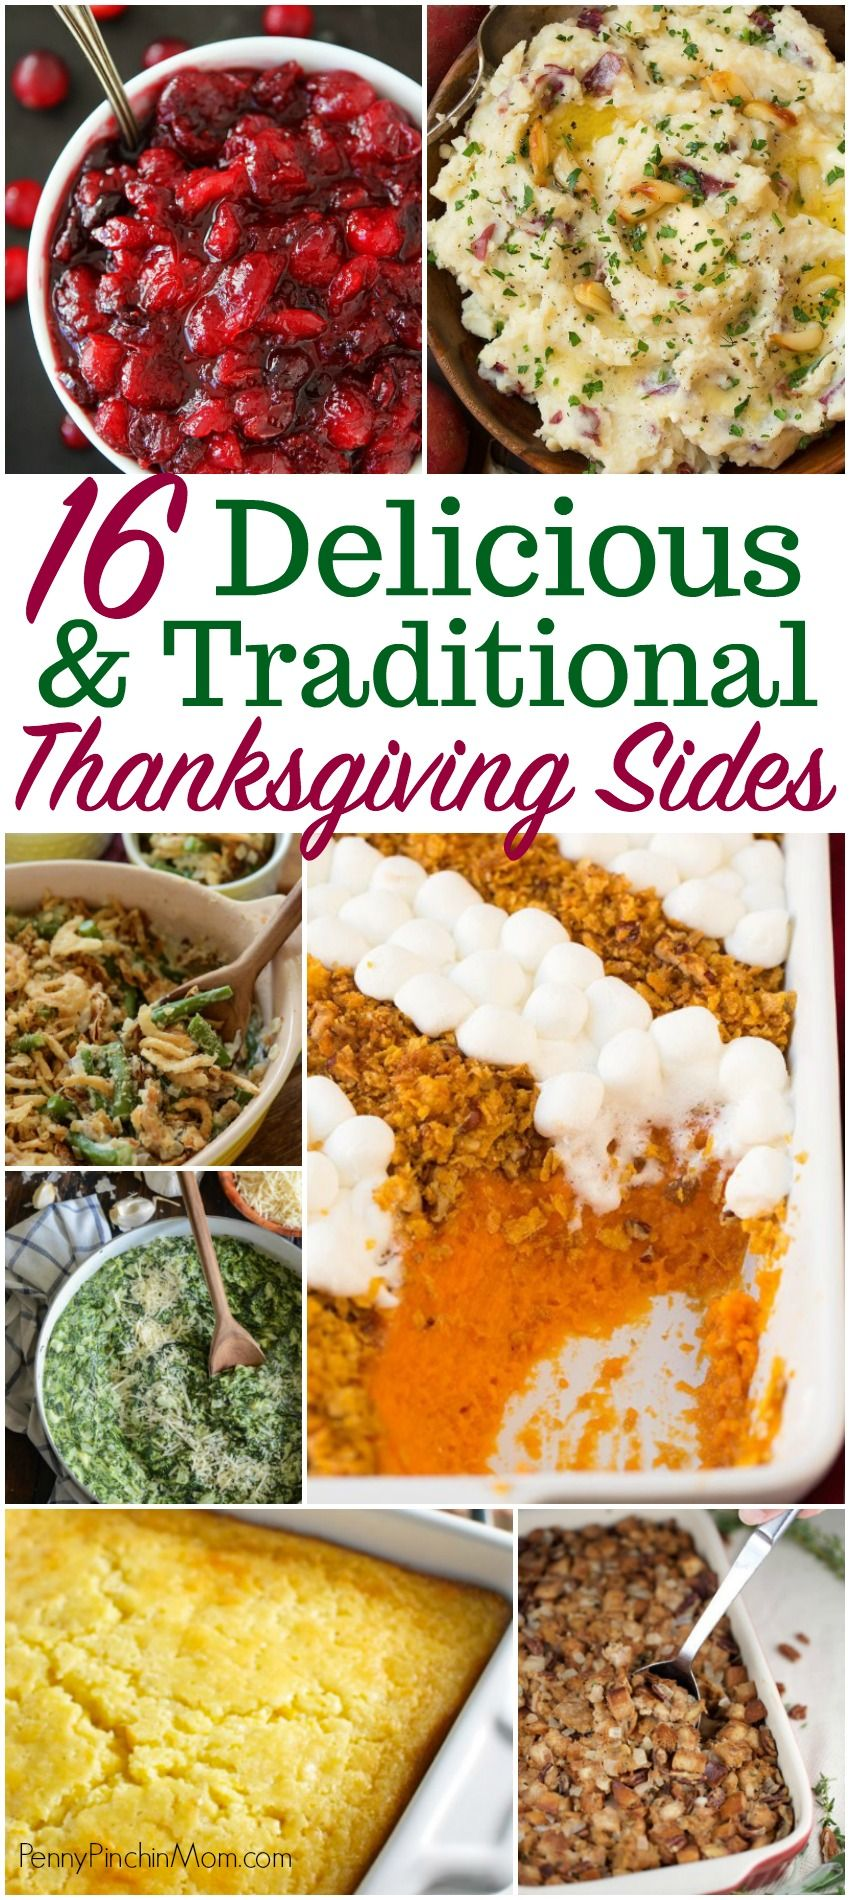 16 Delicious \u0026 Traditional Thanksgiving Side Dishes